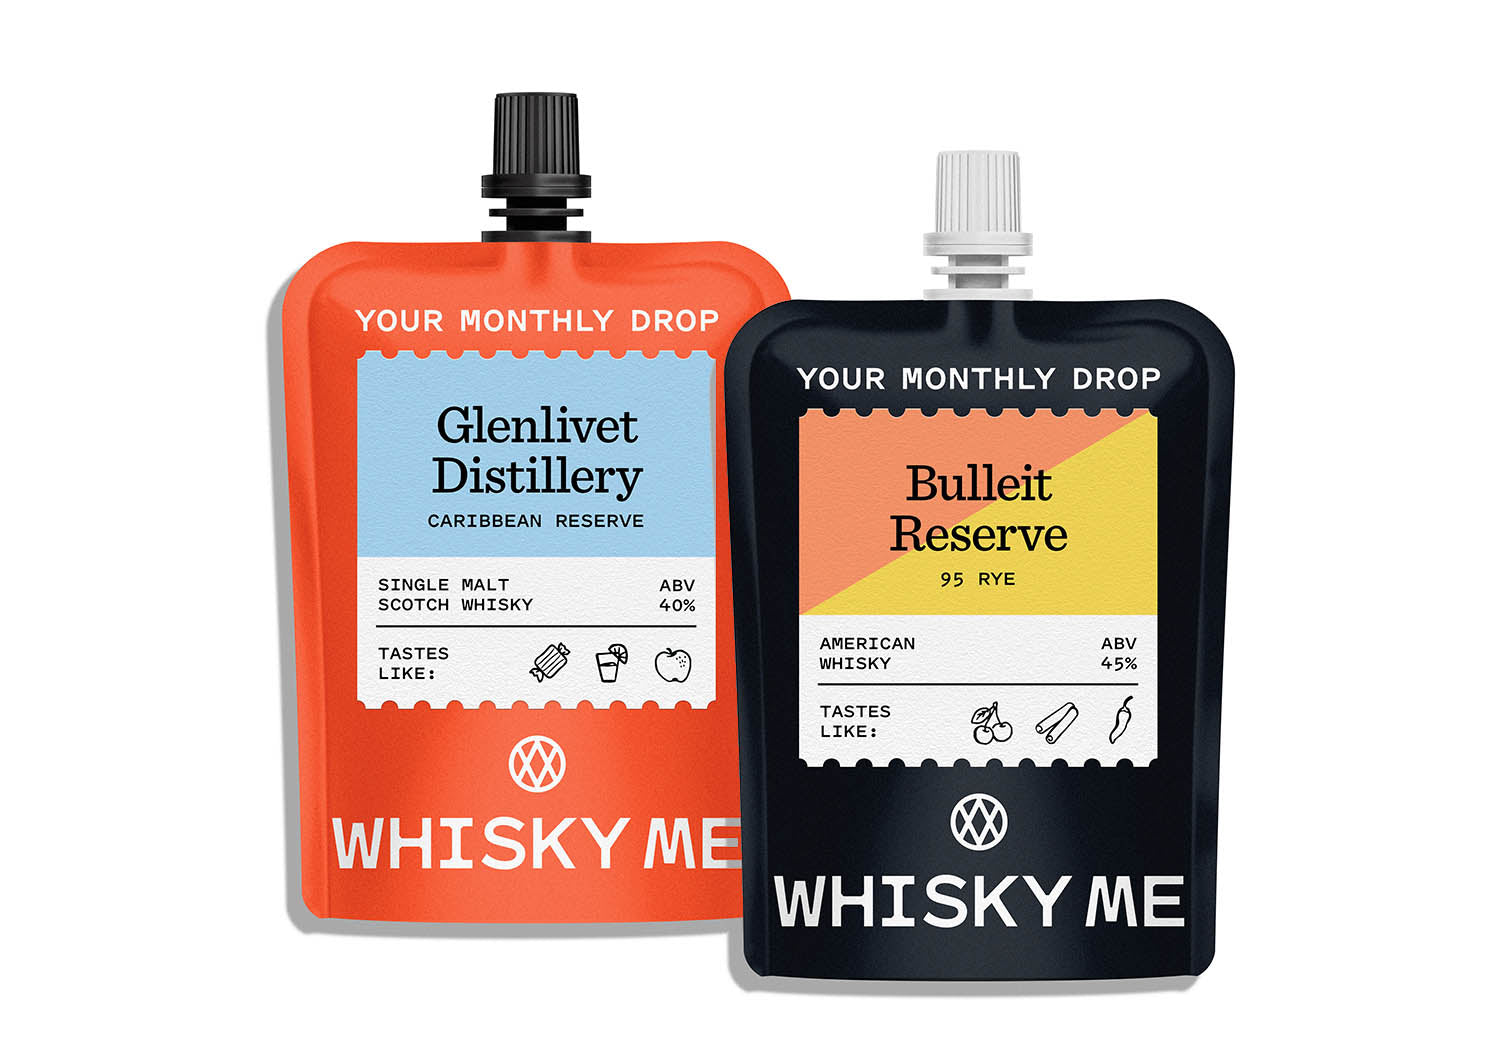 WHISKY ME: Single Malt Scotch vs. World Whisky